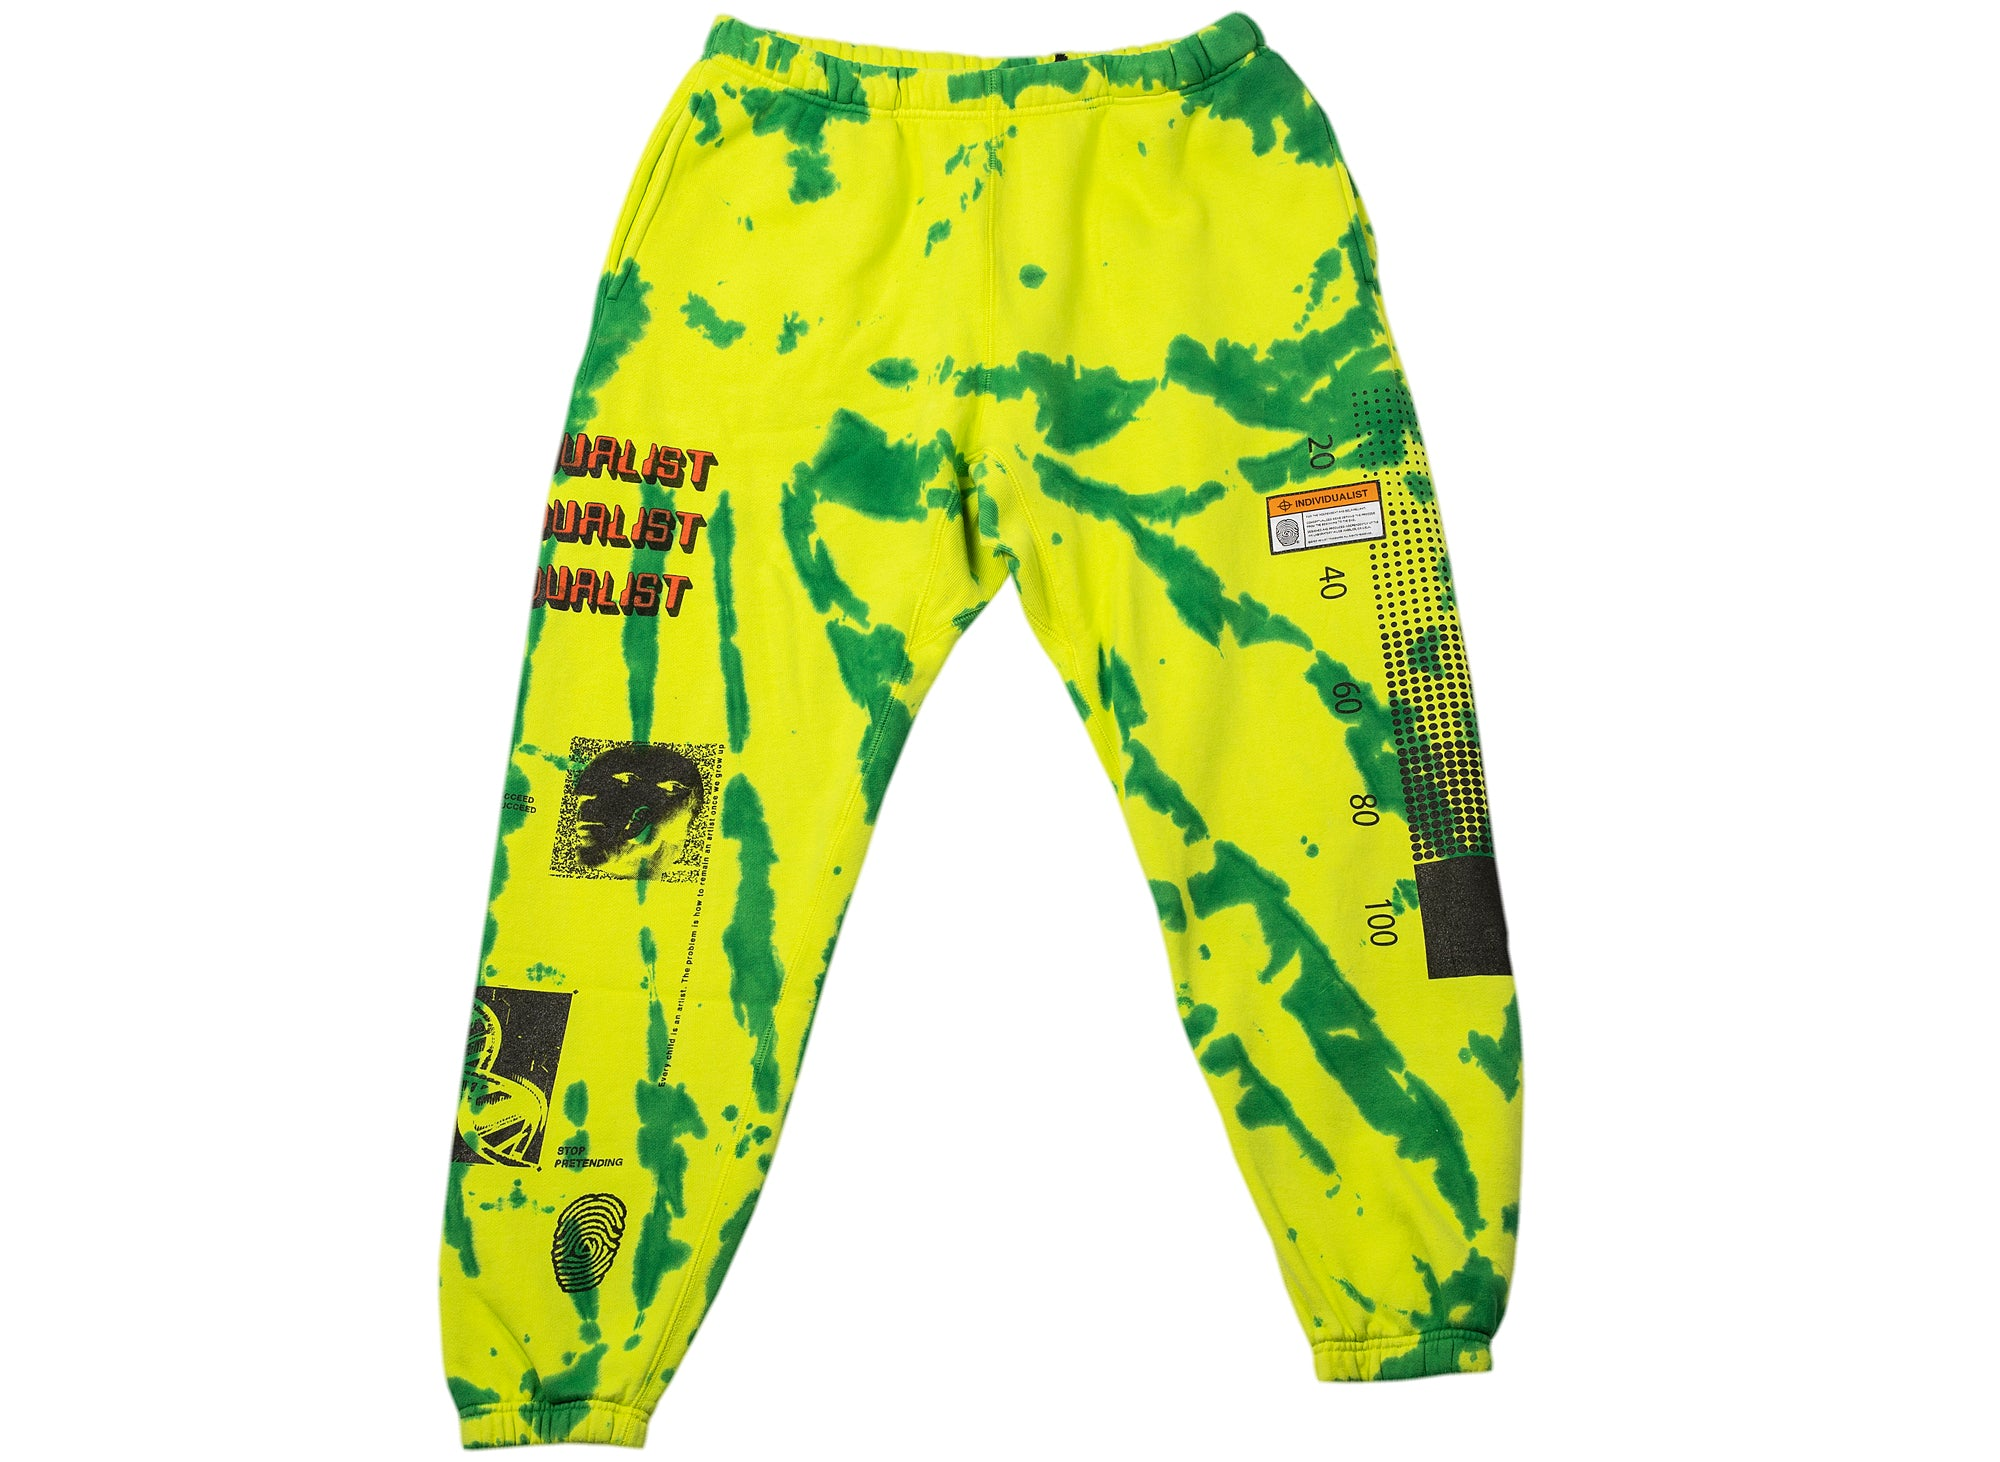 INDVLST Tie Dye Fleece Pants